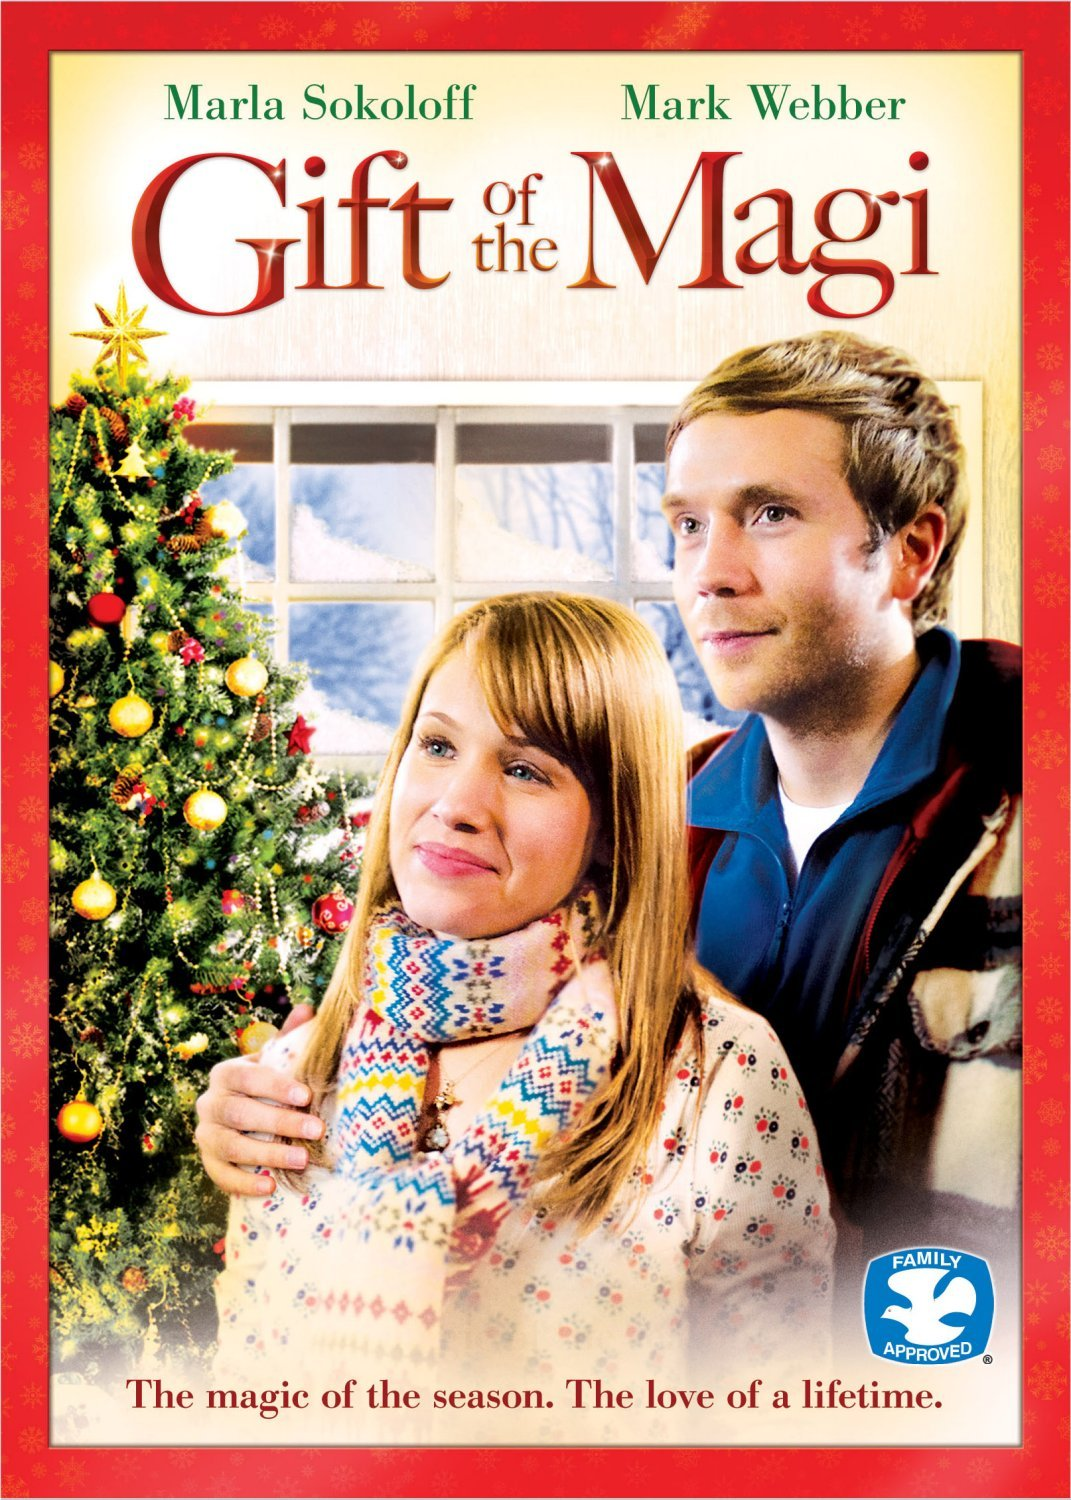 Amazon.com: Gift Of The Magi (Hallmark): Marla Sokoloff, Mark ...